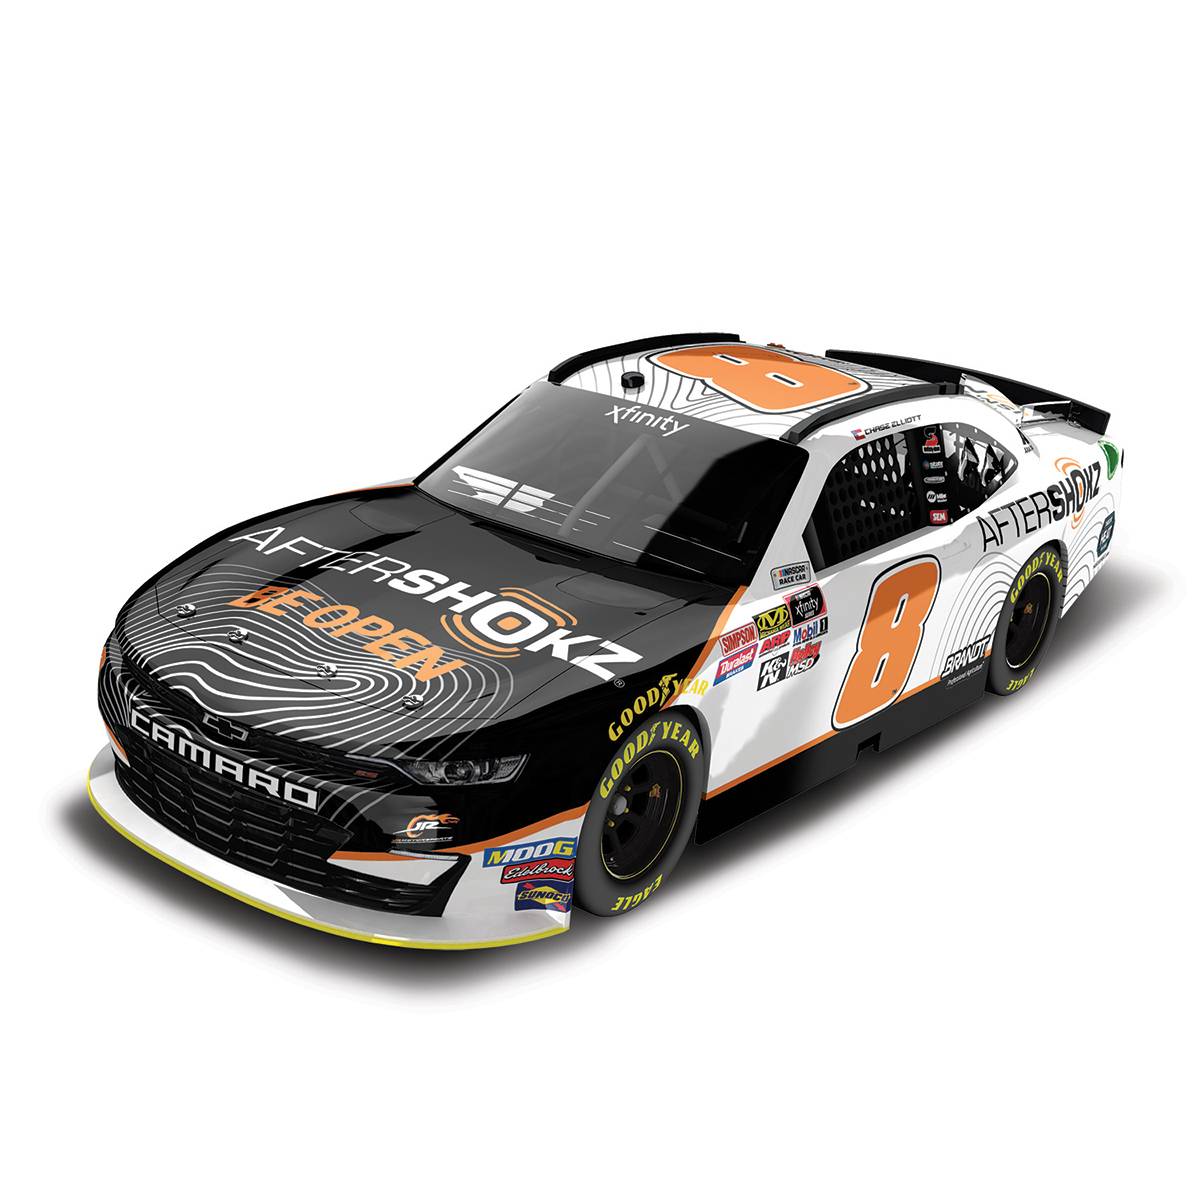 Chase Elliott #8 NASCAR 2019 Aftershokz 1:64 Die Cast